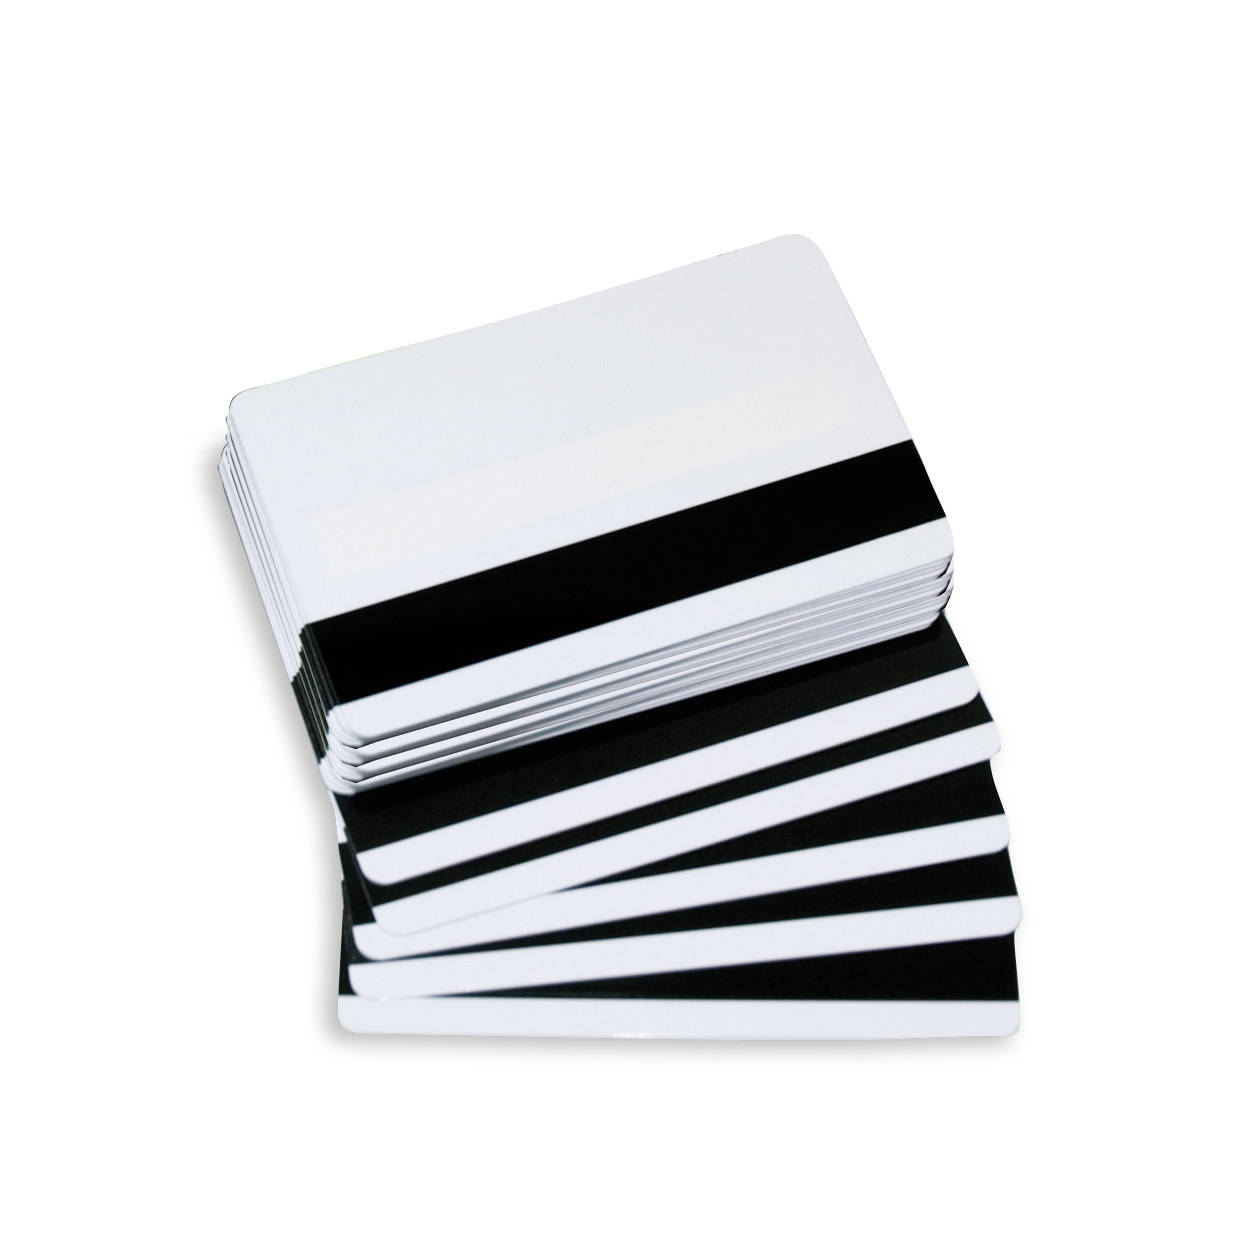 Net2 magstripe cards - pack of 10